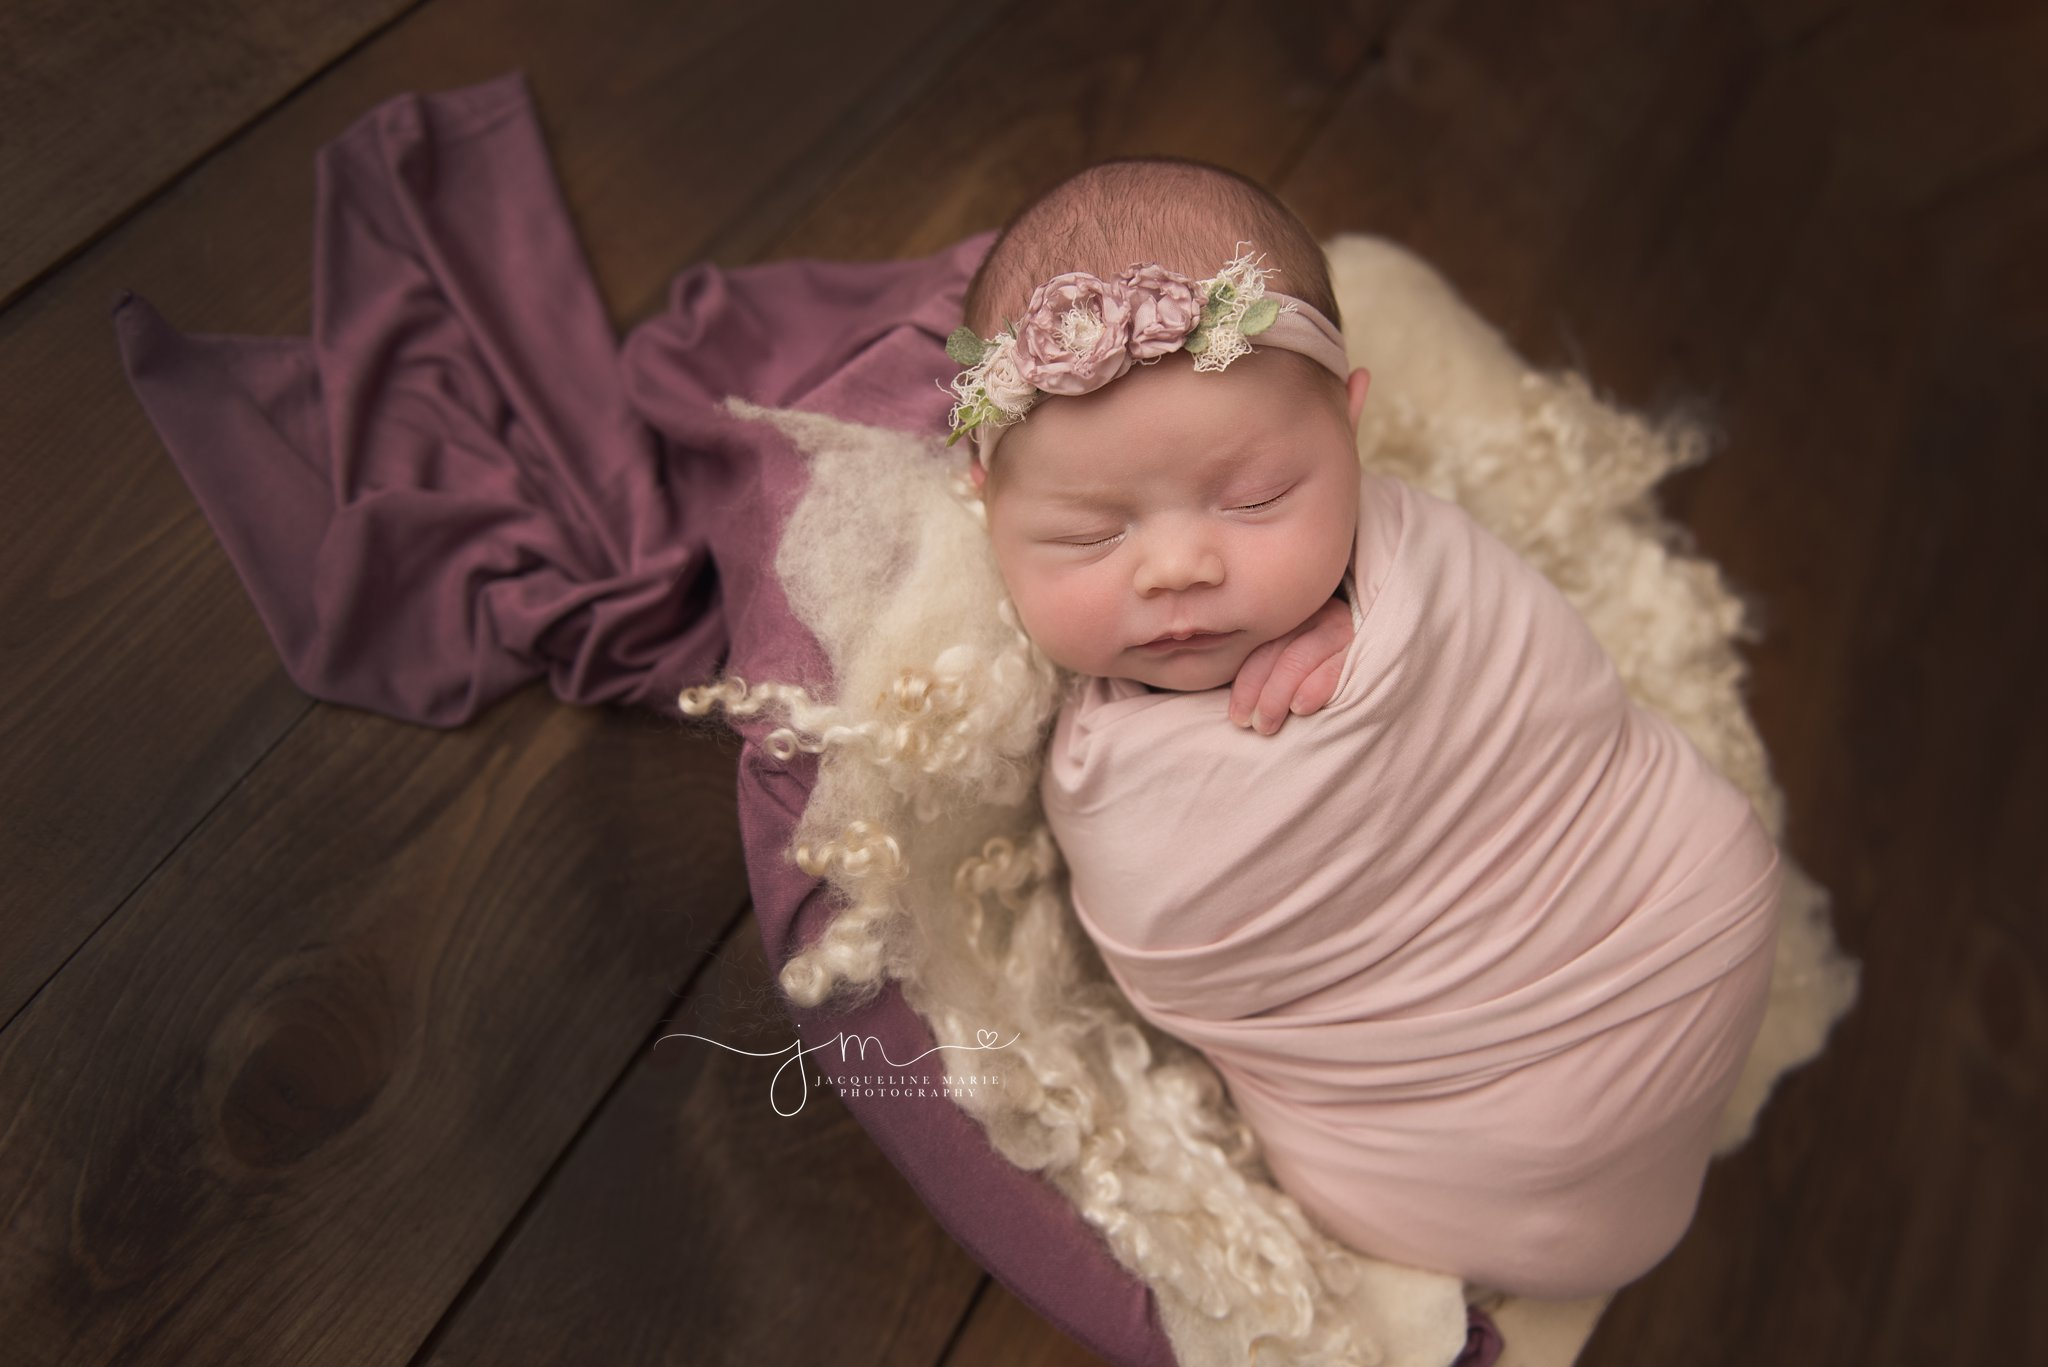 columbus ohio newborn photographer features images of baby girl sleeping is wood bowl